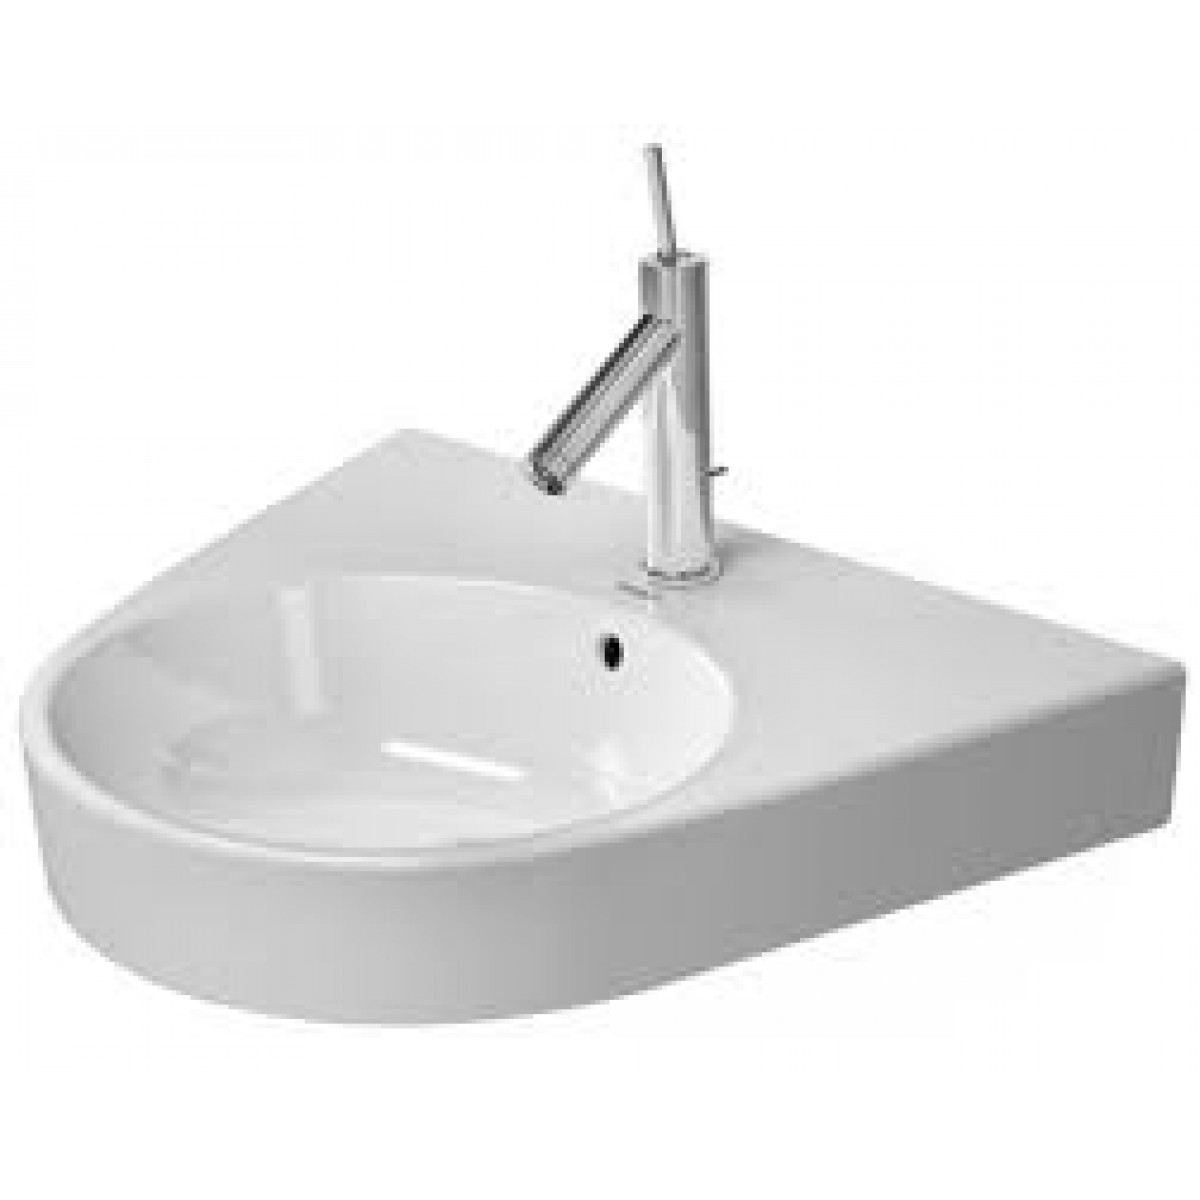 Duravit | Starck 2 | 2323600000 | Wall Mounted Basin - View all ...